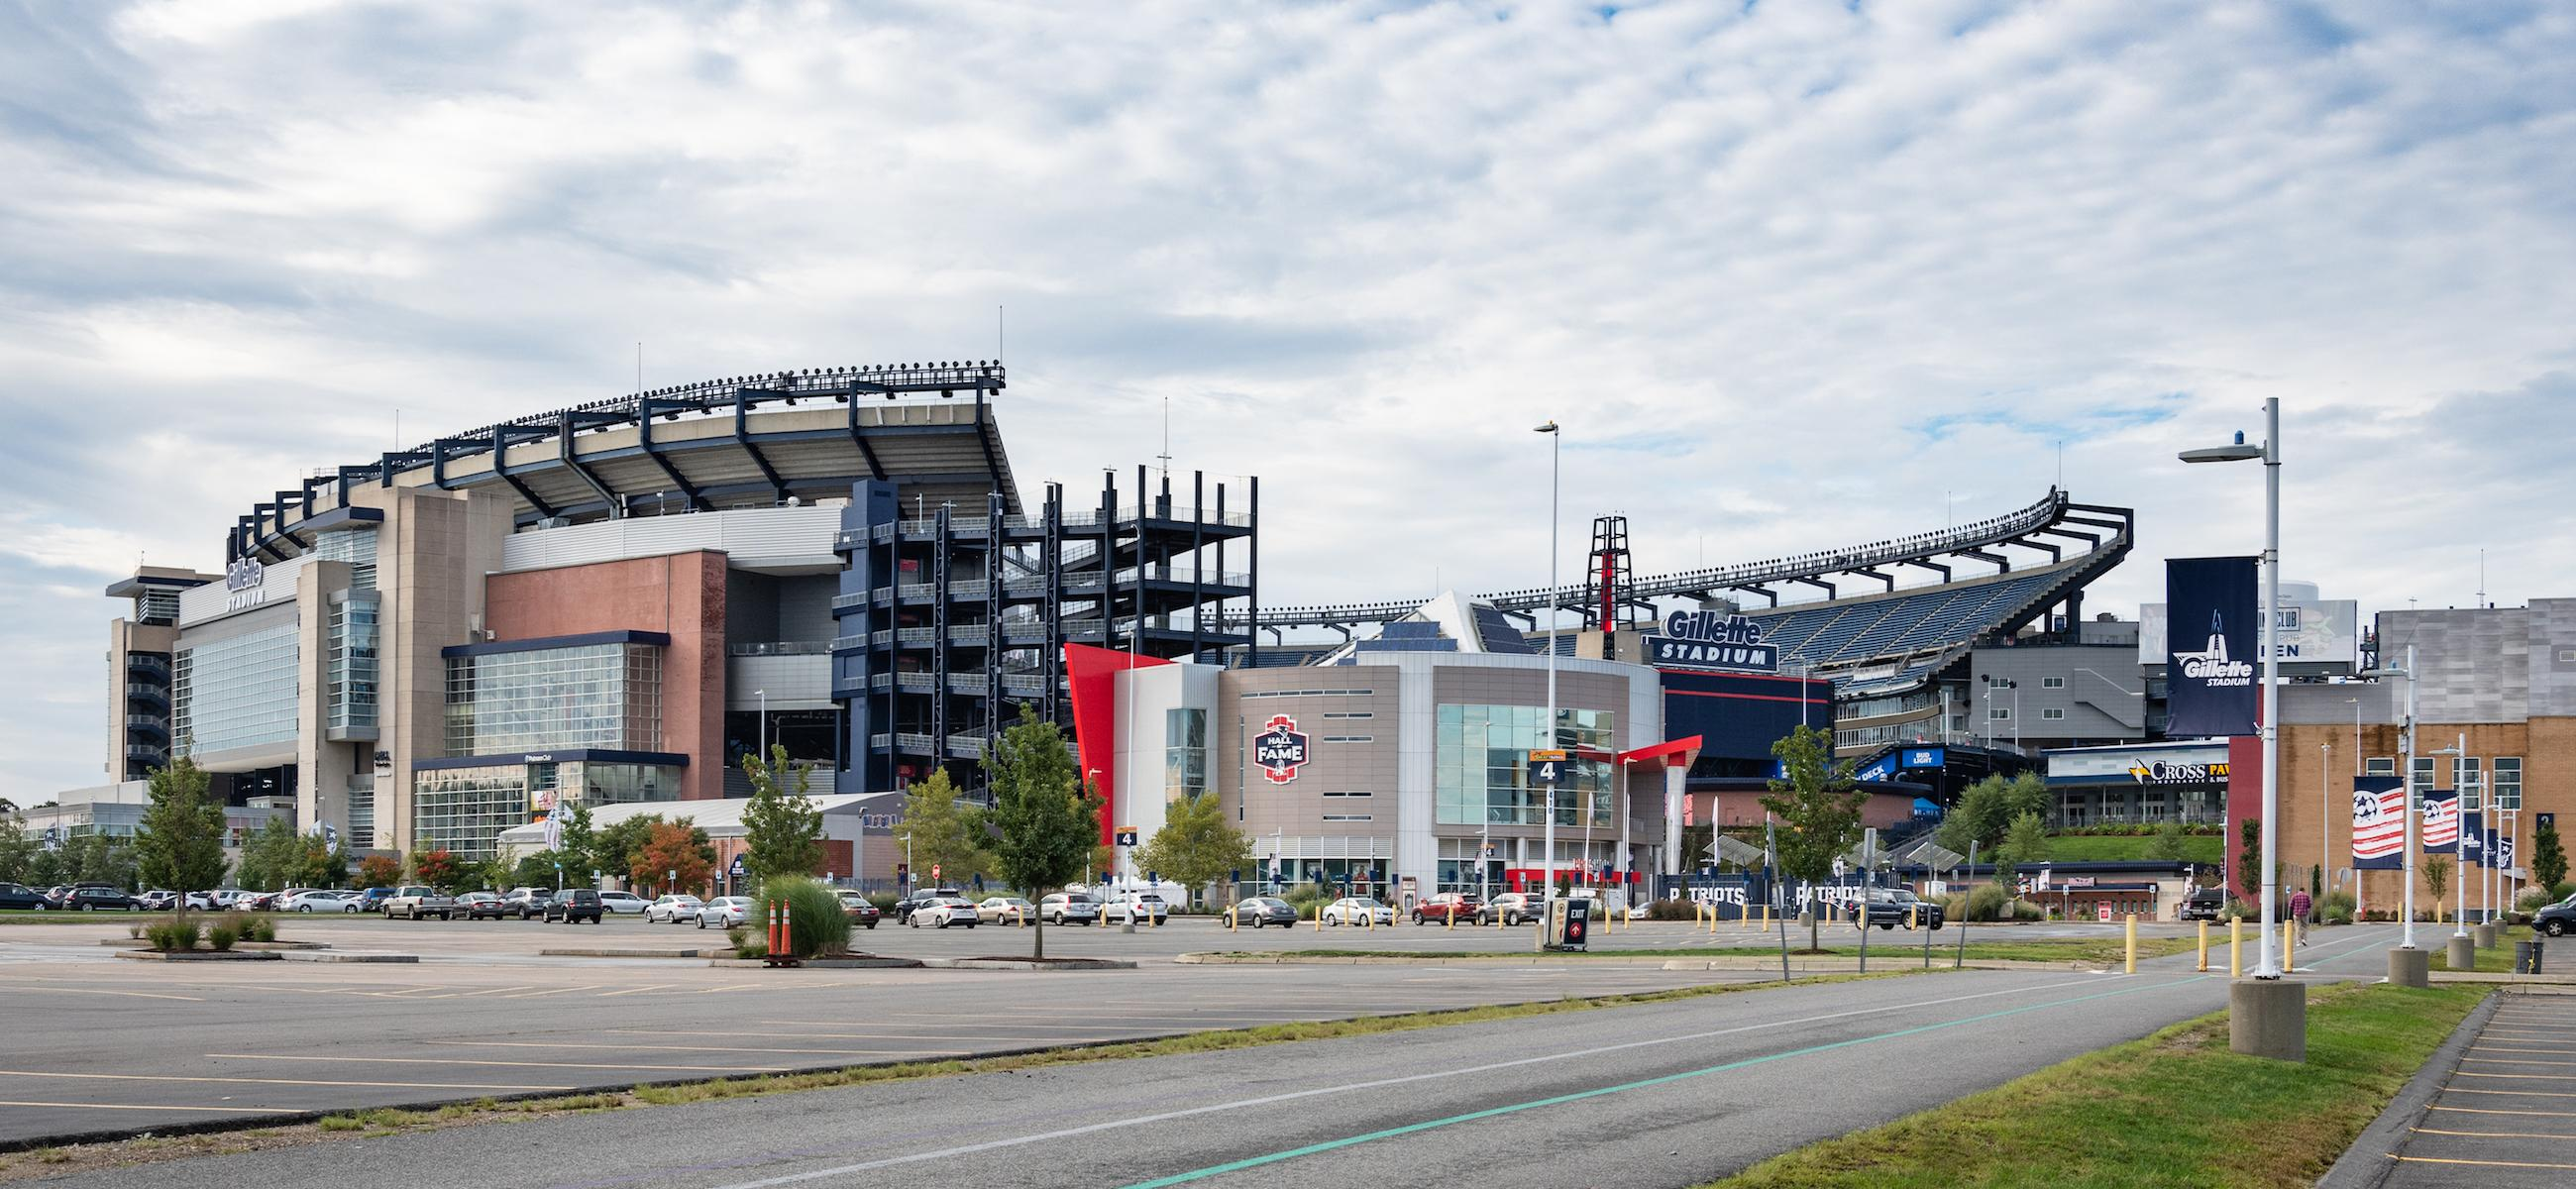 gillette stadium 2018